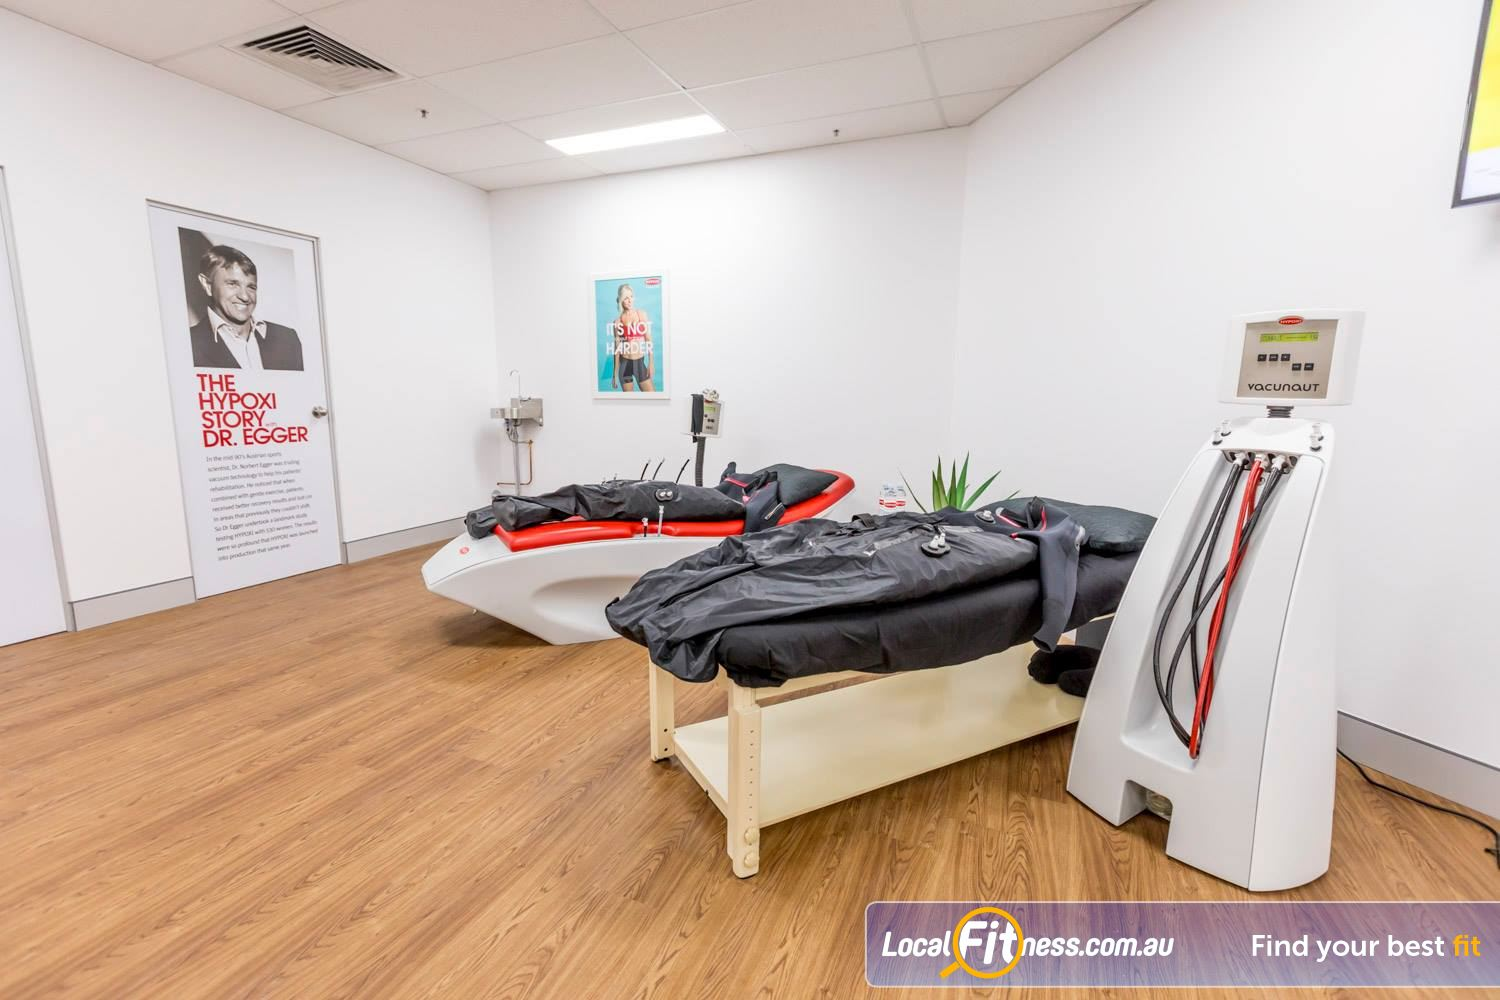 HYPOXI Weight Loss Newtown Help your body work smarter, not harder in our HYPOXI Newtown weight loss studio.